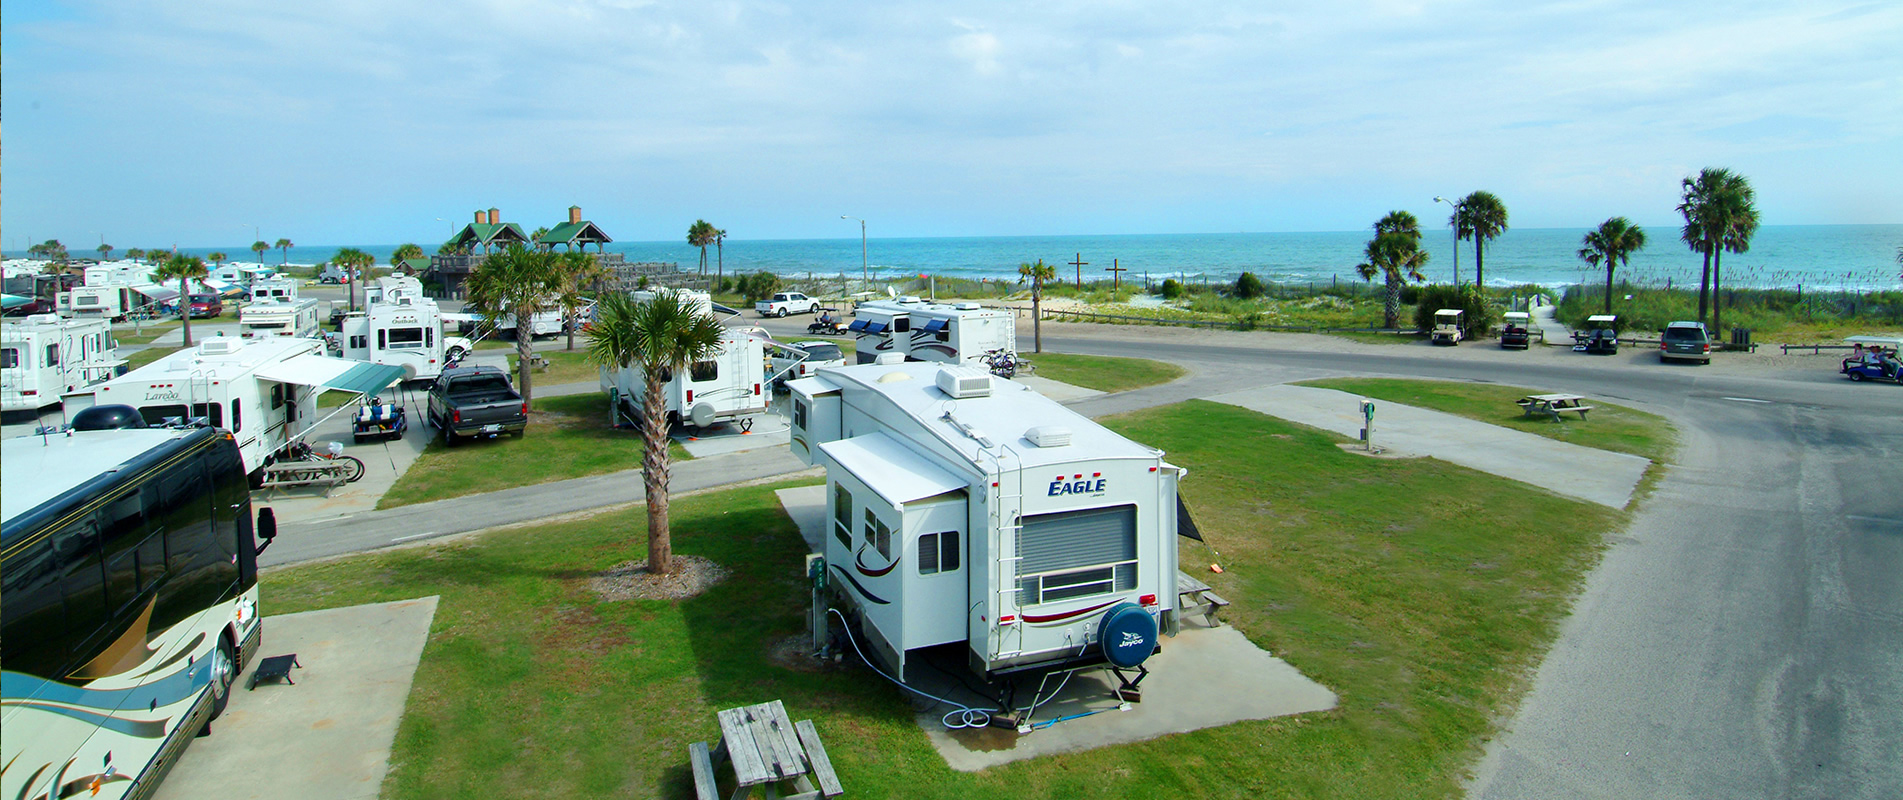 Oceanfront Campsites Myrtle Beach Sc In Ocean Lakes